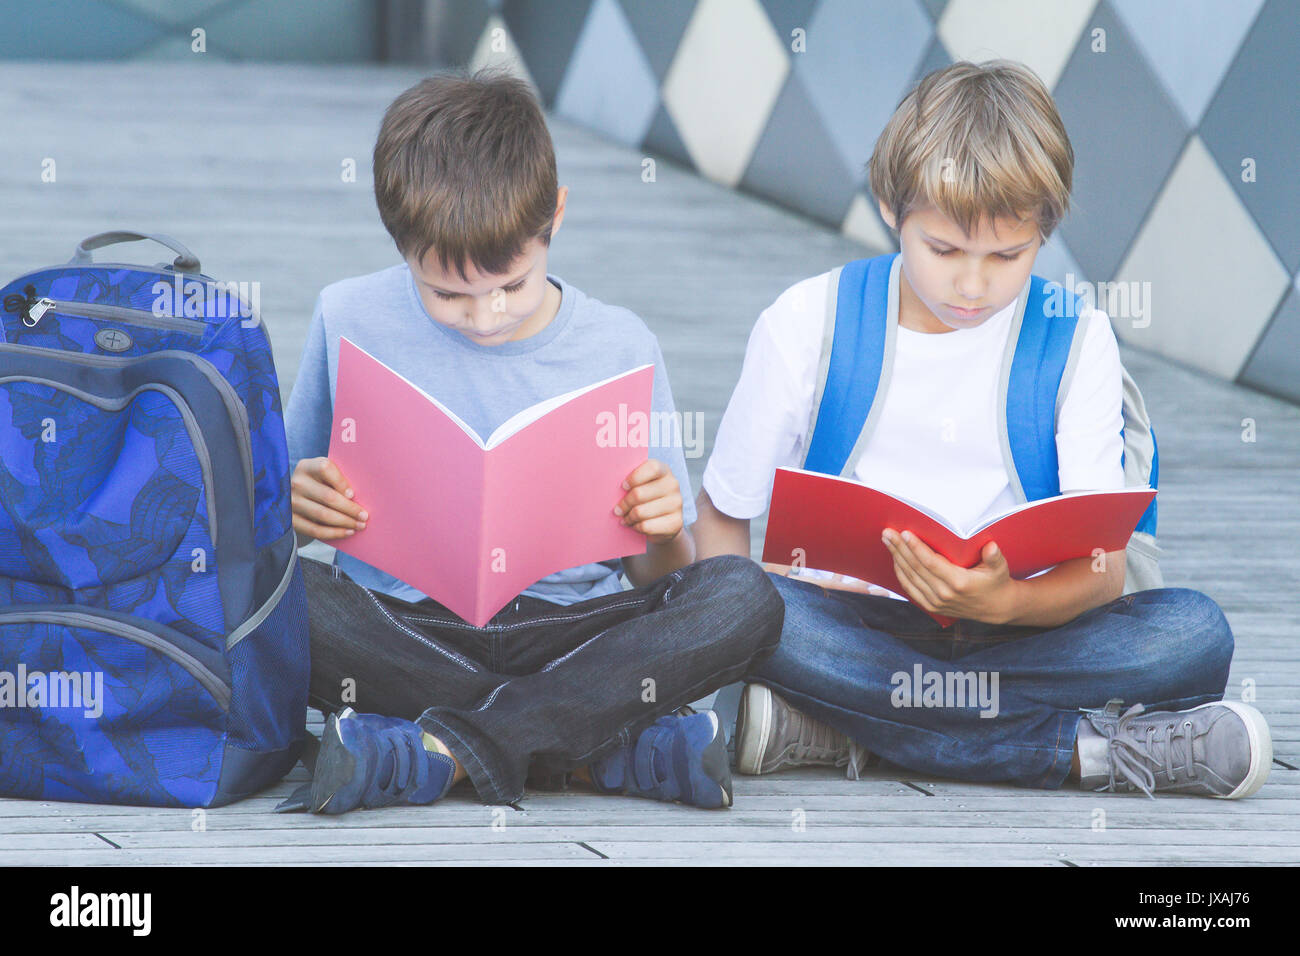 Schoolboys reading books. Kids doing homework outdoors. Back to school concept. Stock Photo